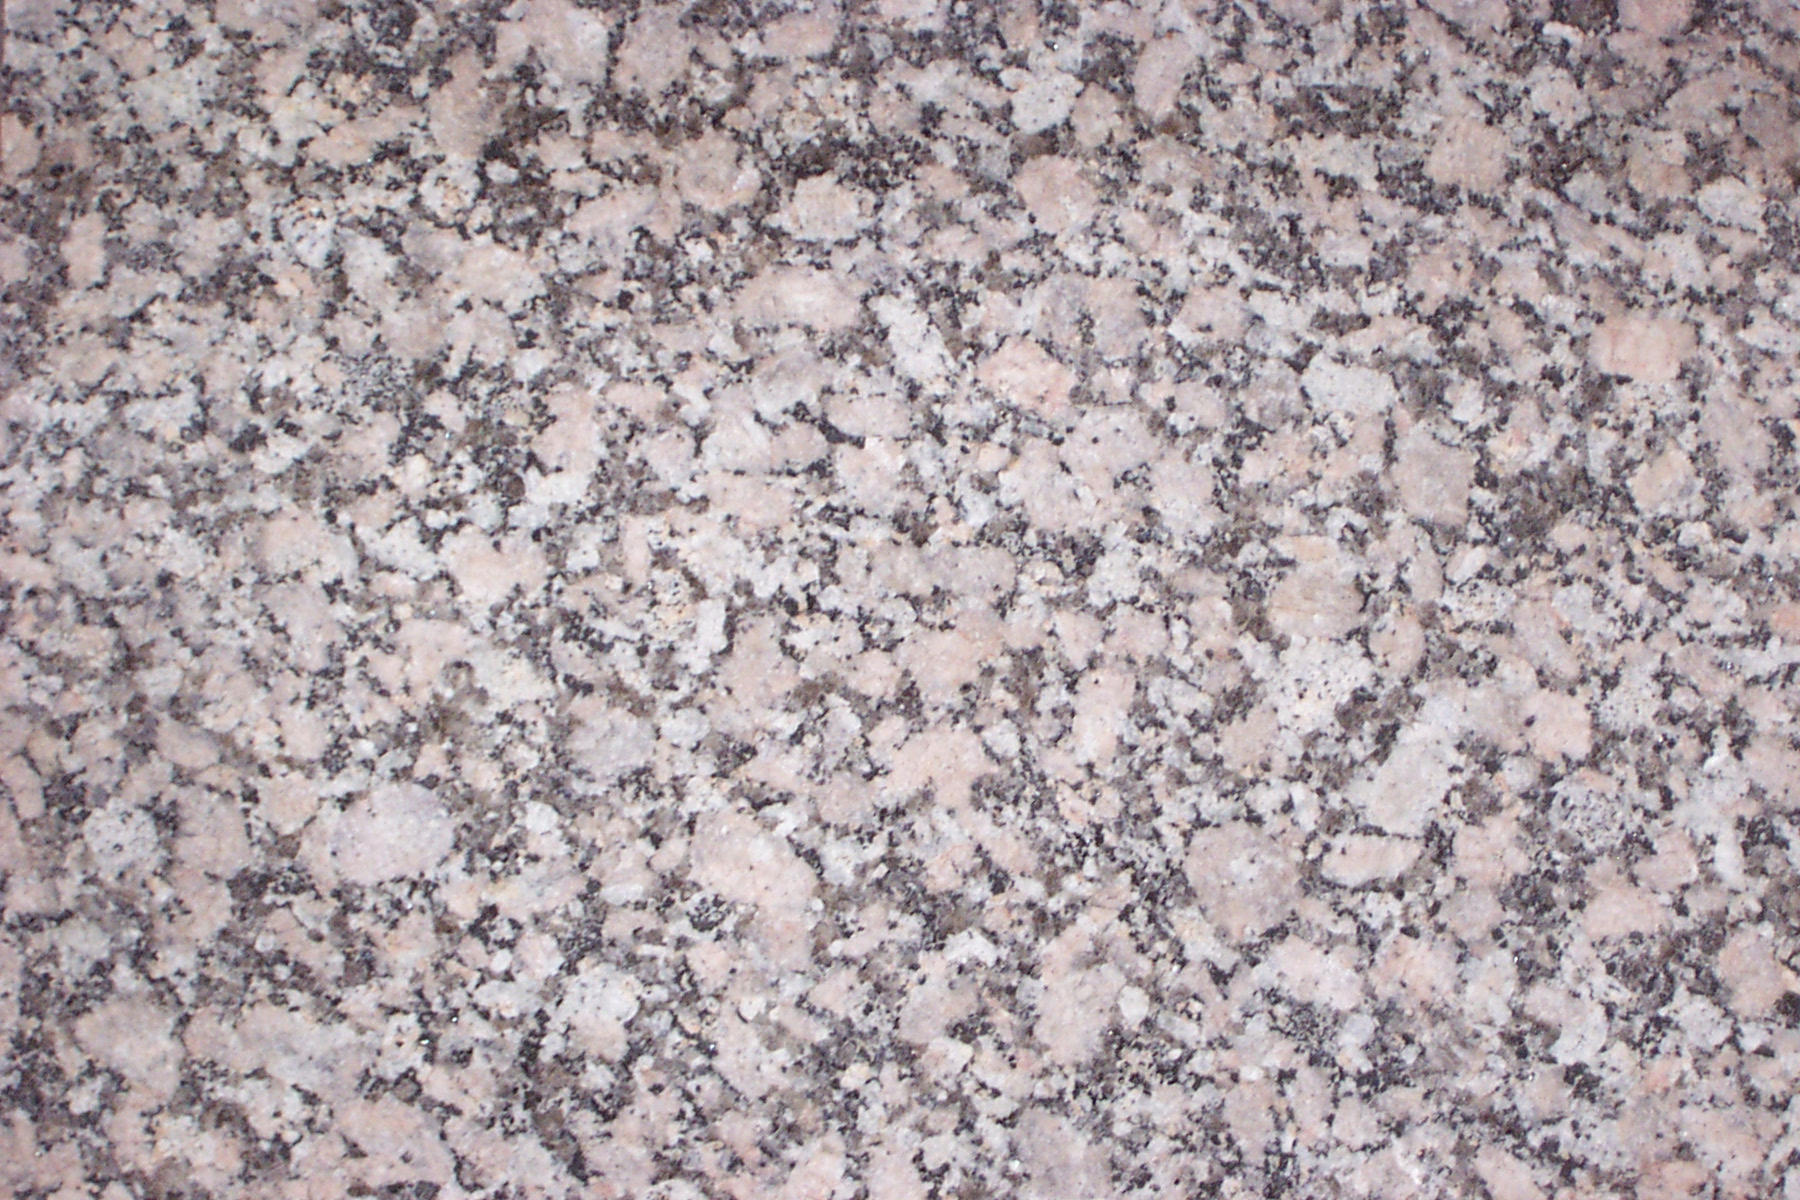 Granite by reznor70-stock